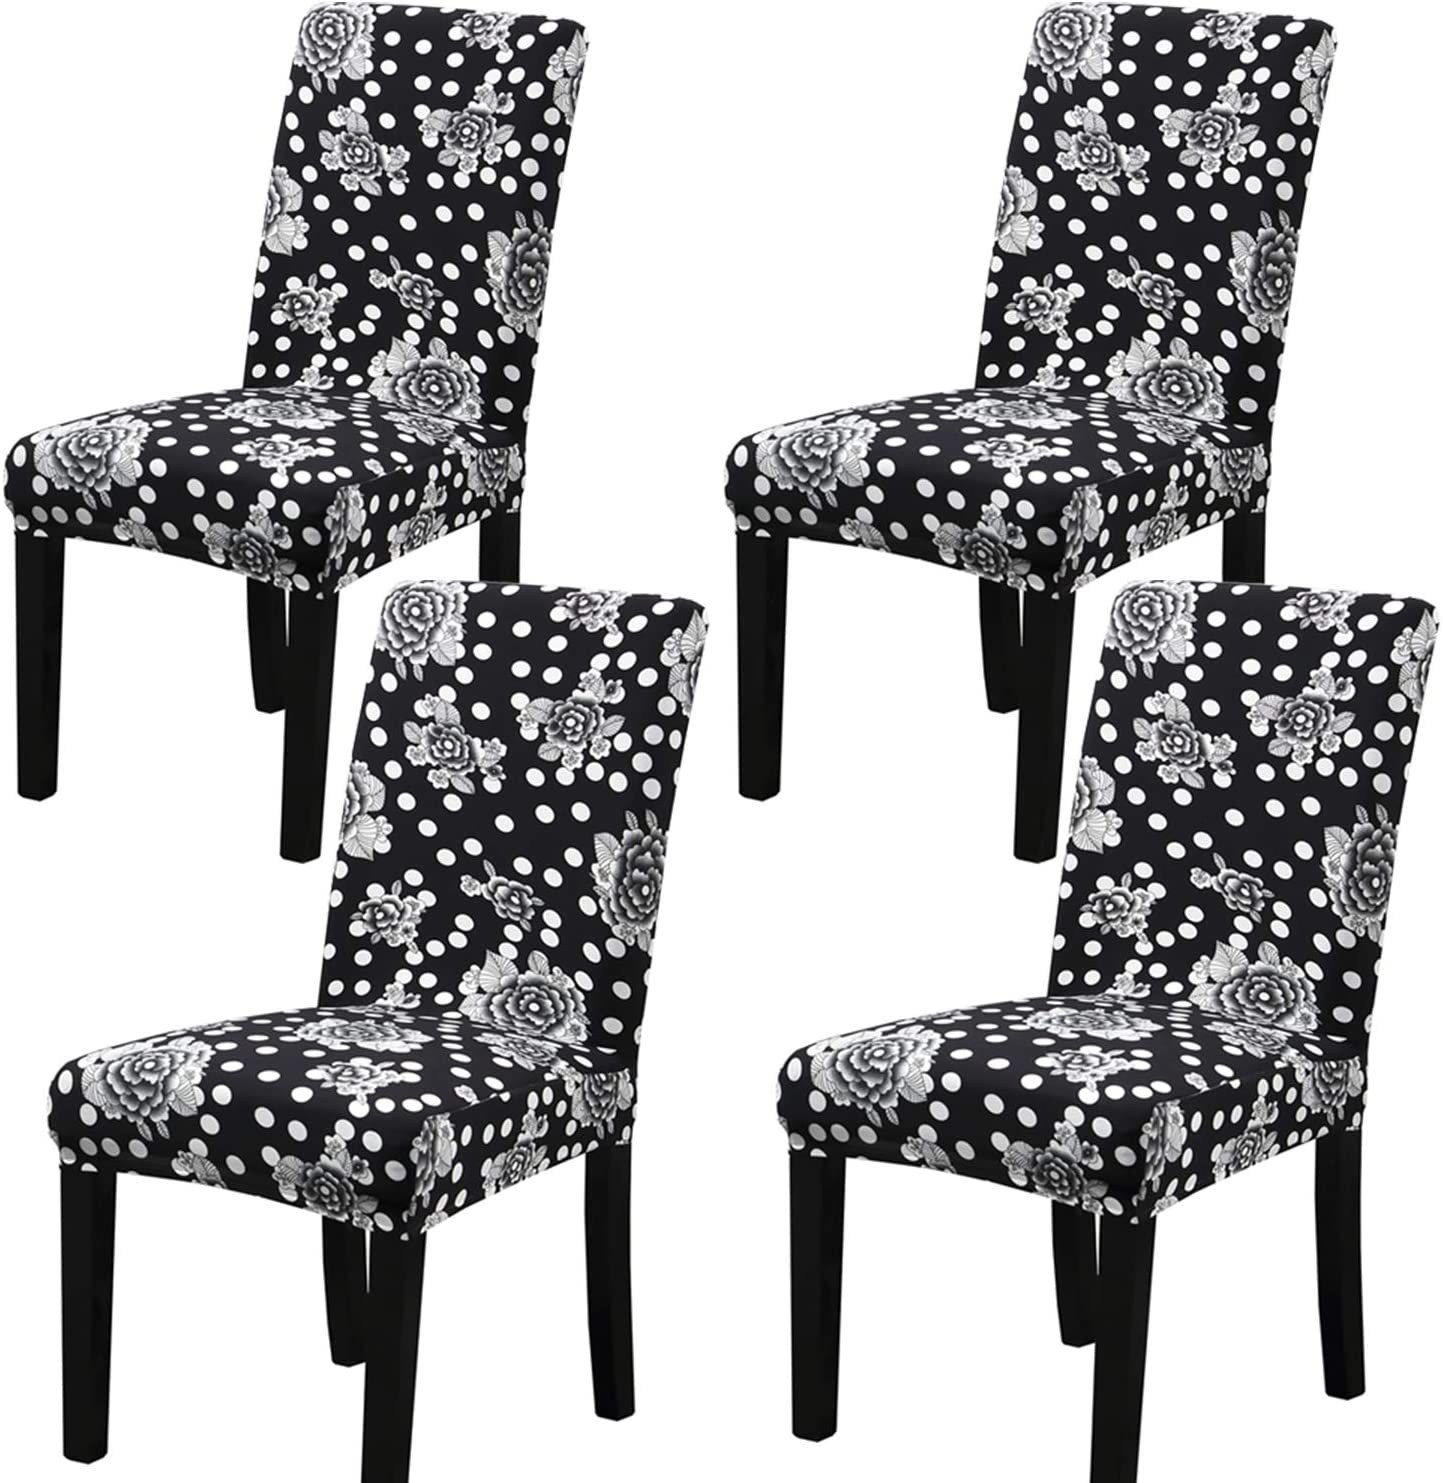 4 PC Stretch Dining Chair Covers Printed Flower Spandex Seat Slipcover Chair Protectors Covers Removable Washable Anti-dust Seat for Hotel,Office,Ceremony,Banquet Wedding Party(Black White Snow)